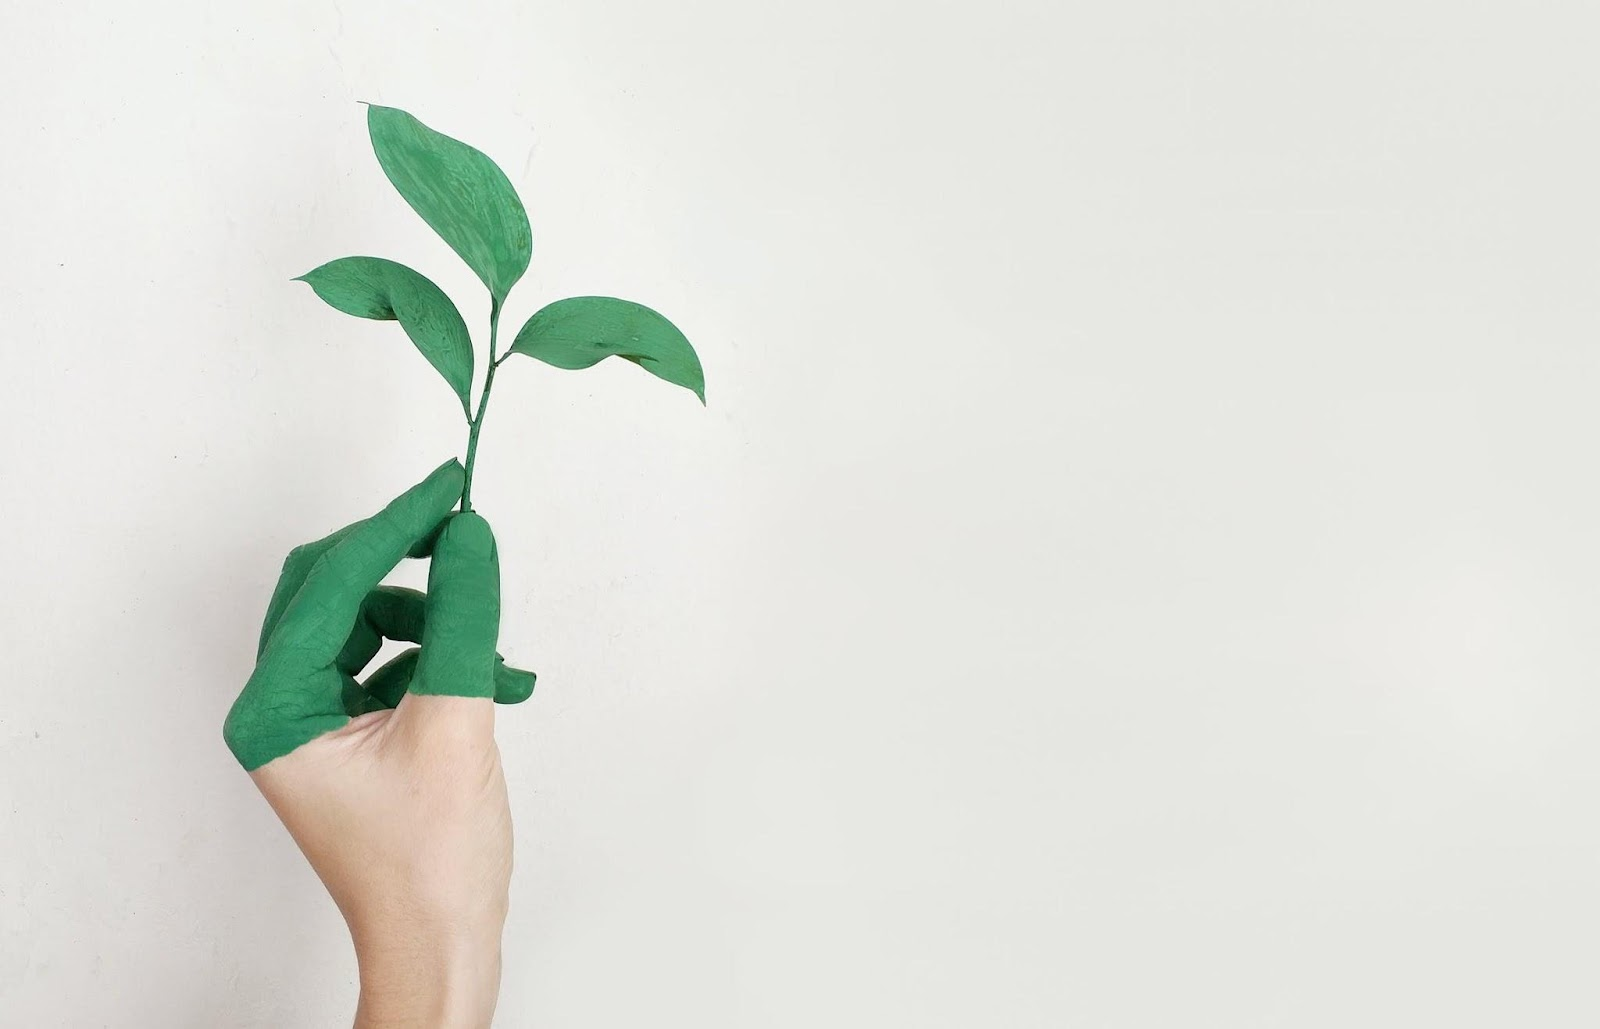 Growing A Business While Remaining Eco-Friendly